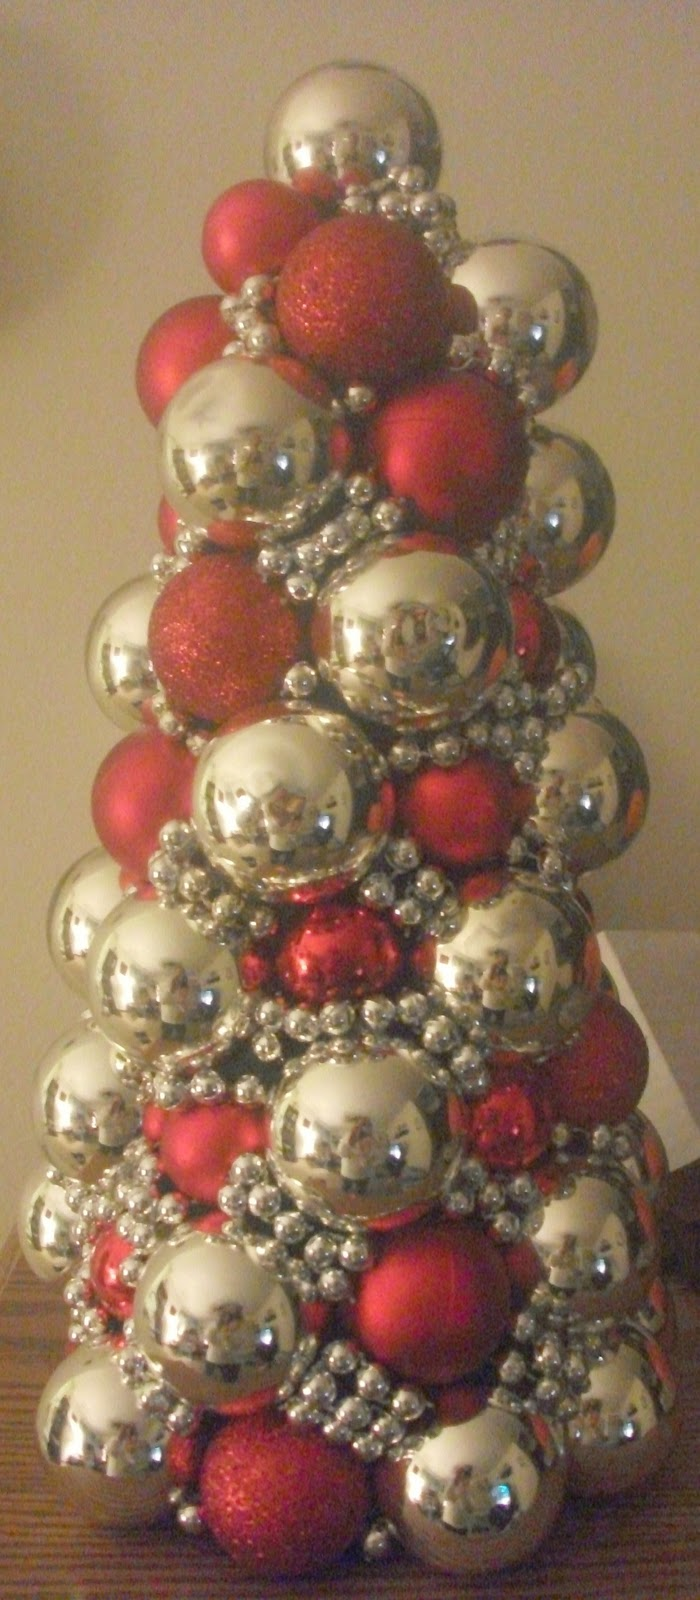 Christmas Tree Made Of Ornaments - If you are looking for the best Christmas gifts, then visit our site. We have something for everyone, search and order today. Christmas Tree Made Of Ornaments. Only you can decide how hard you want to be on yourself when the temptation to .